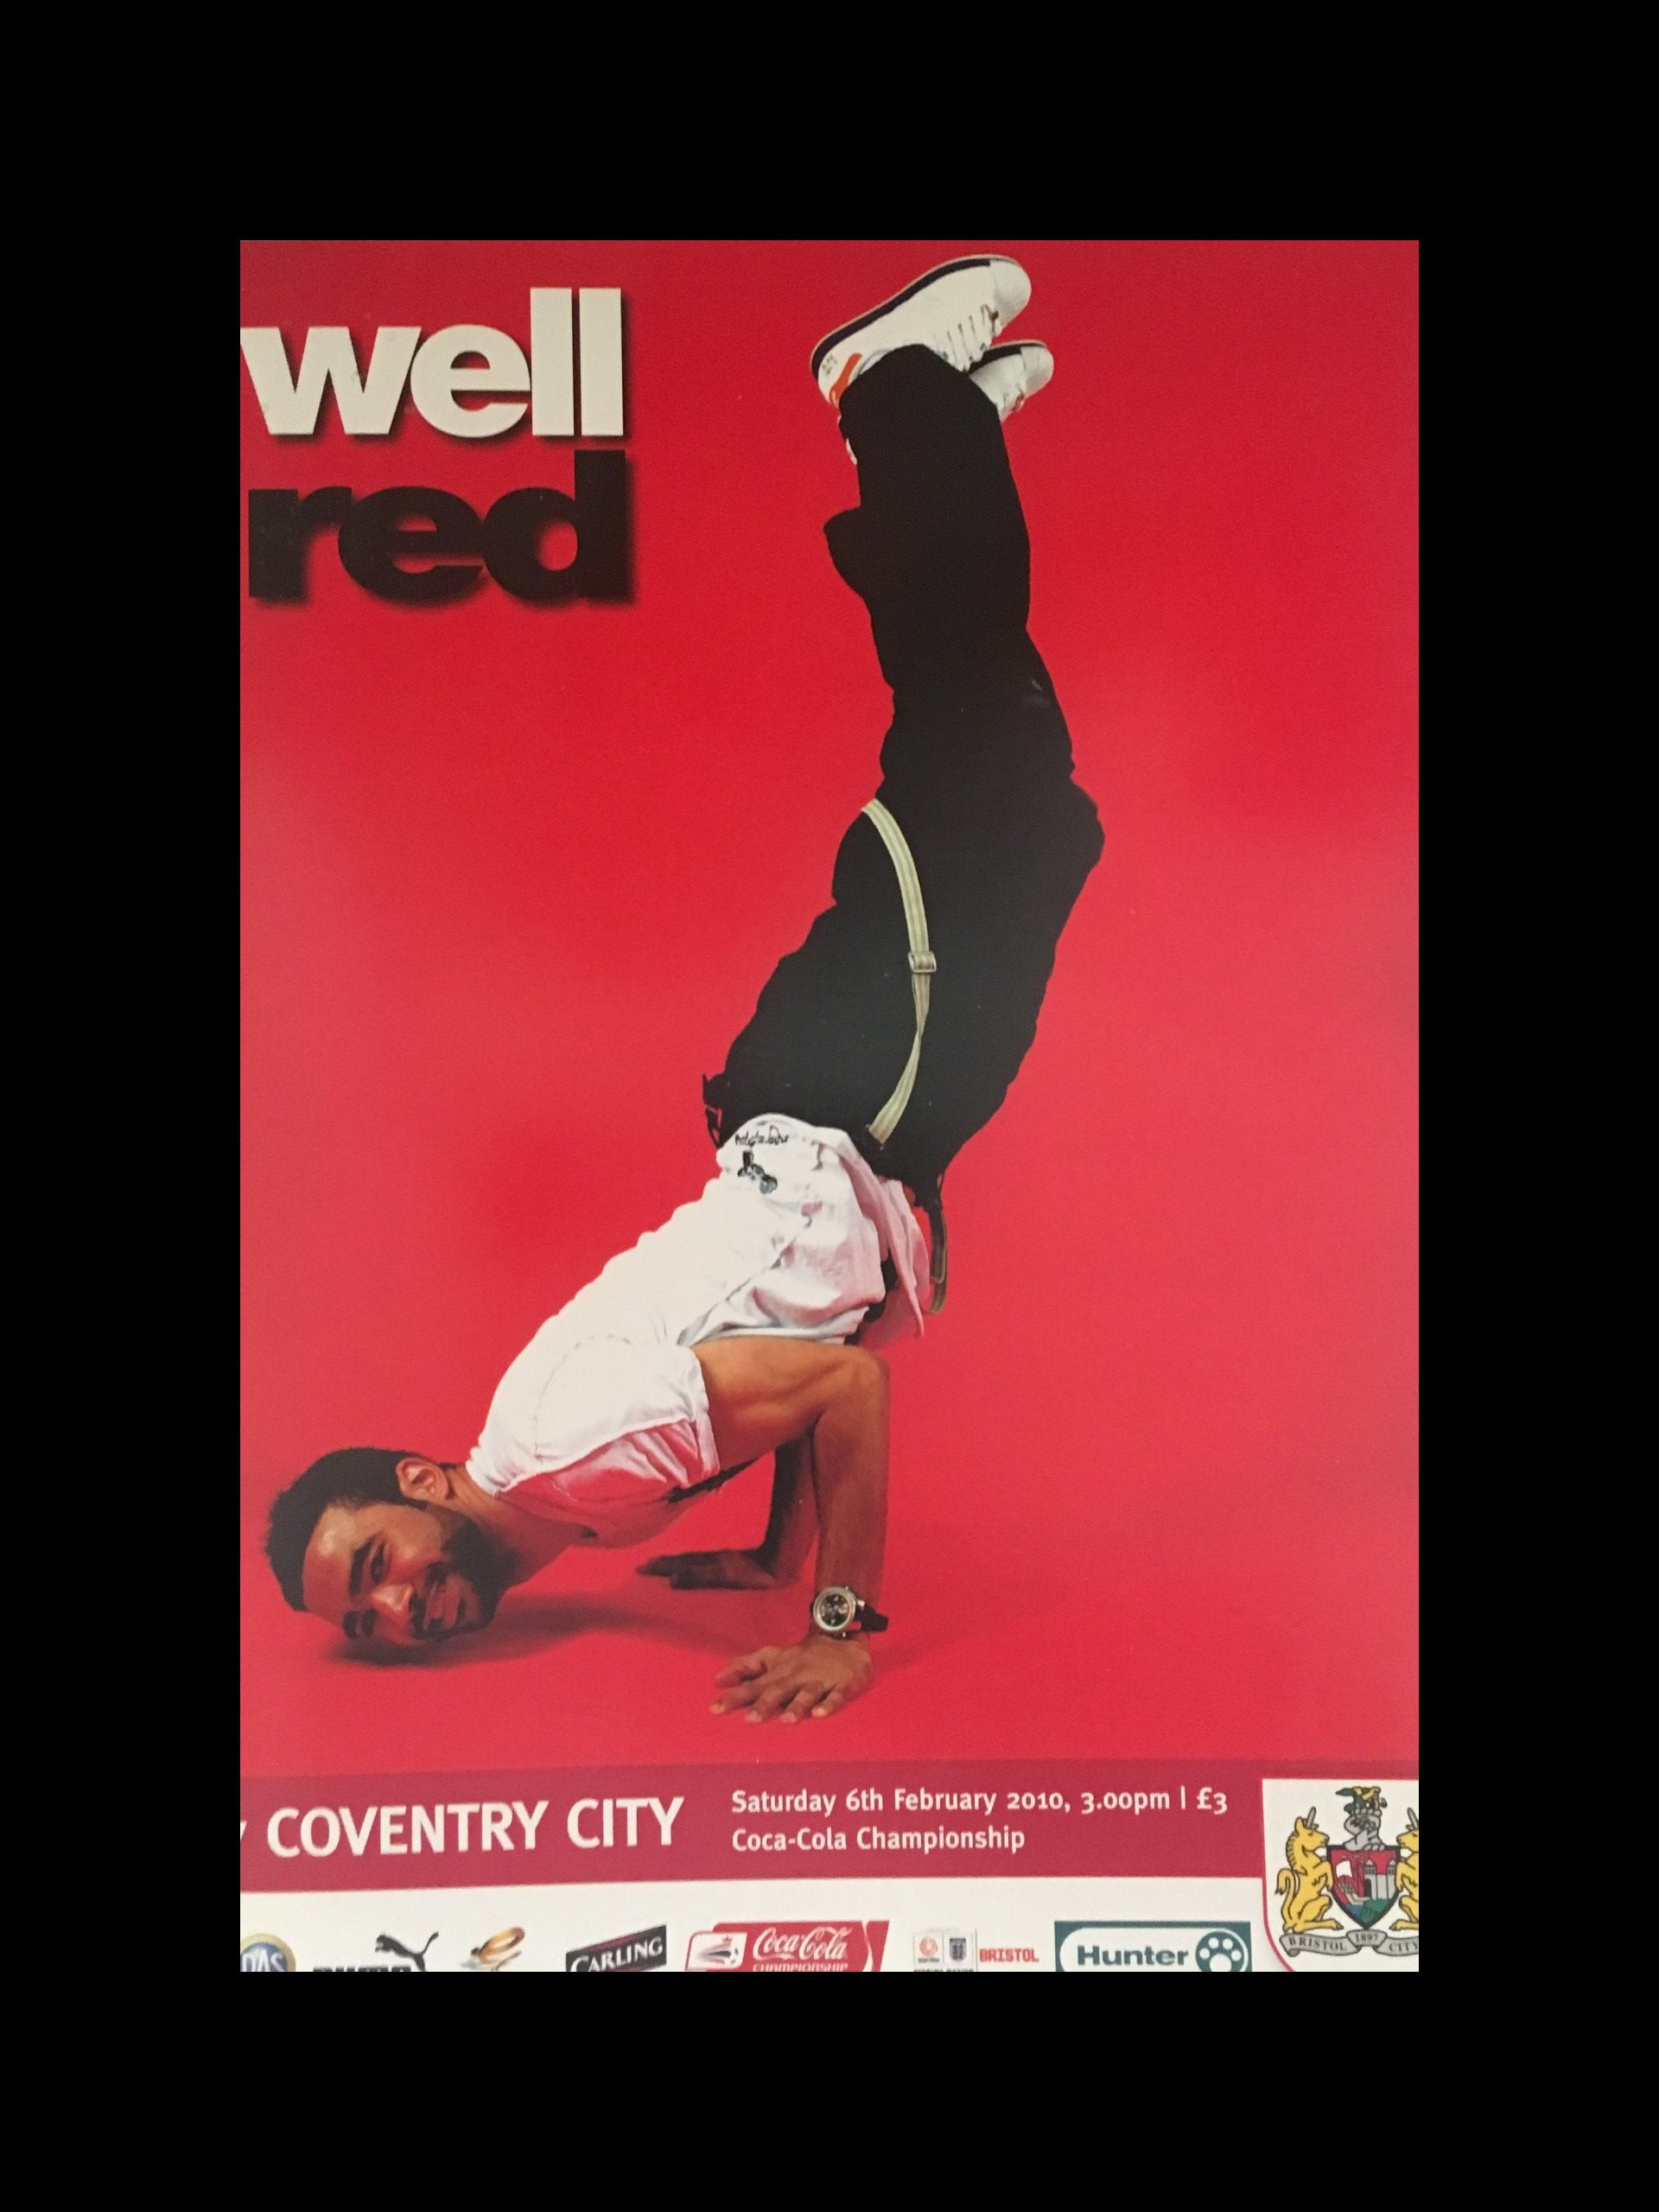 Bristol City v Coventry City 06-02-2010 Programme